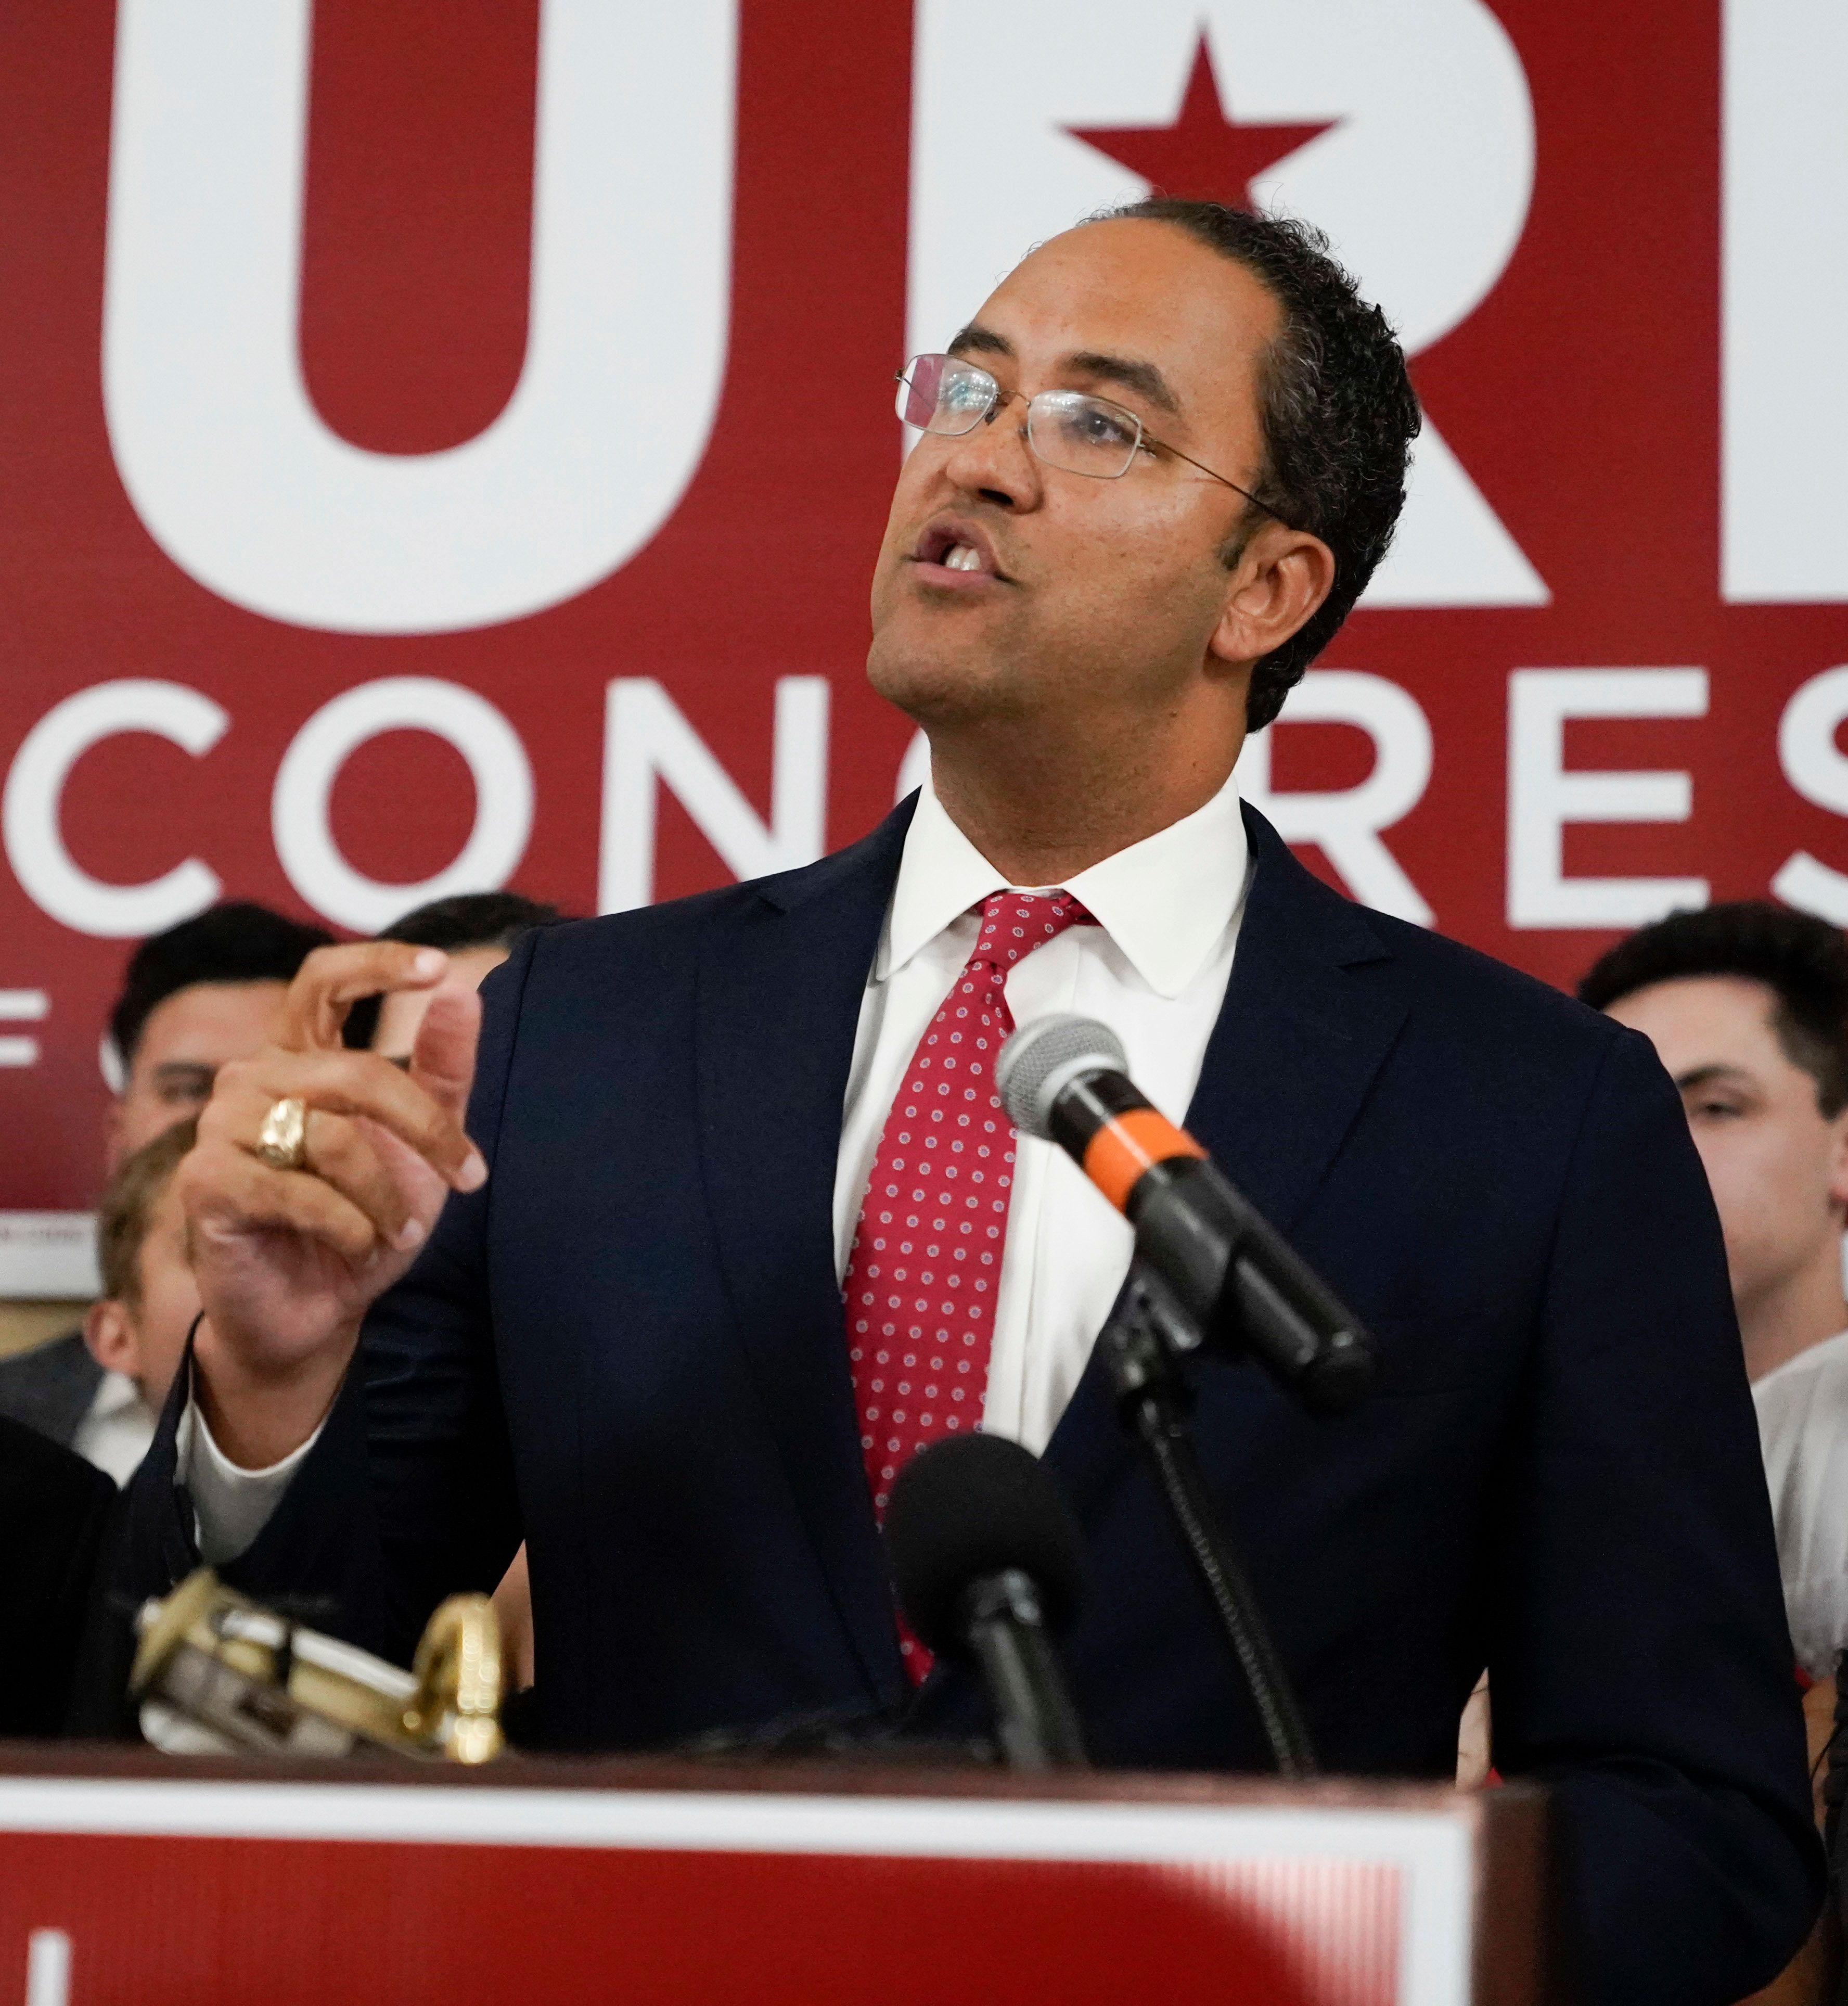 Incumbent U.S. Rep. Will Hurd, R-Texas, speaks during his election night victory party, Tuesday, Nov. 6, 2018, in San Antonio. Hurd defeated Democratic challenger Gina Ortiz Jones. (AP Photo/Darren Abate)